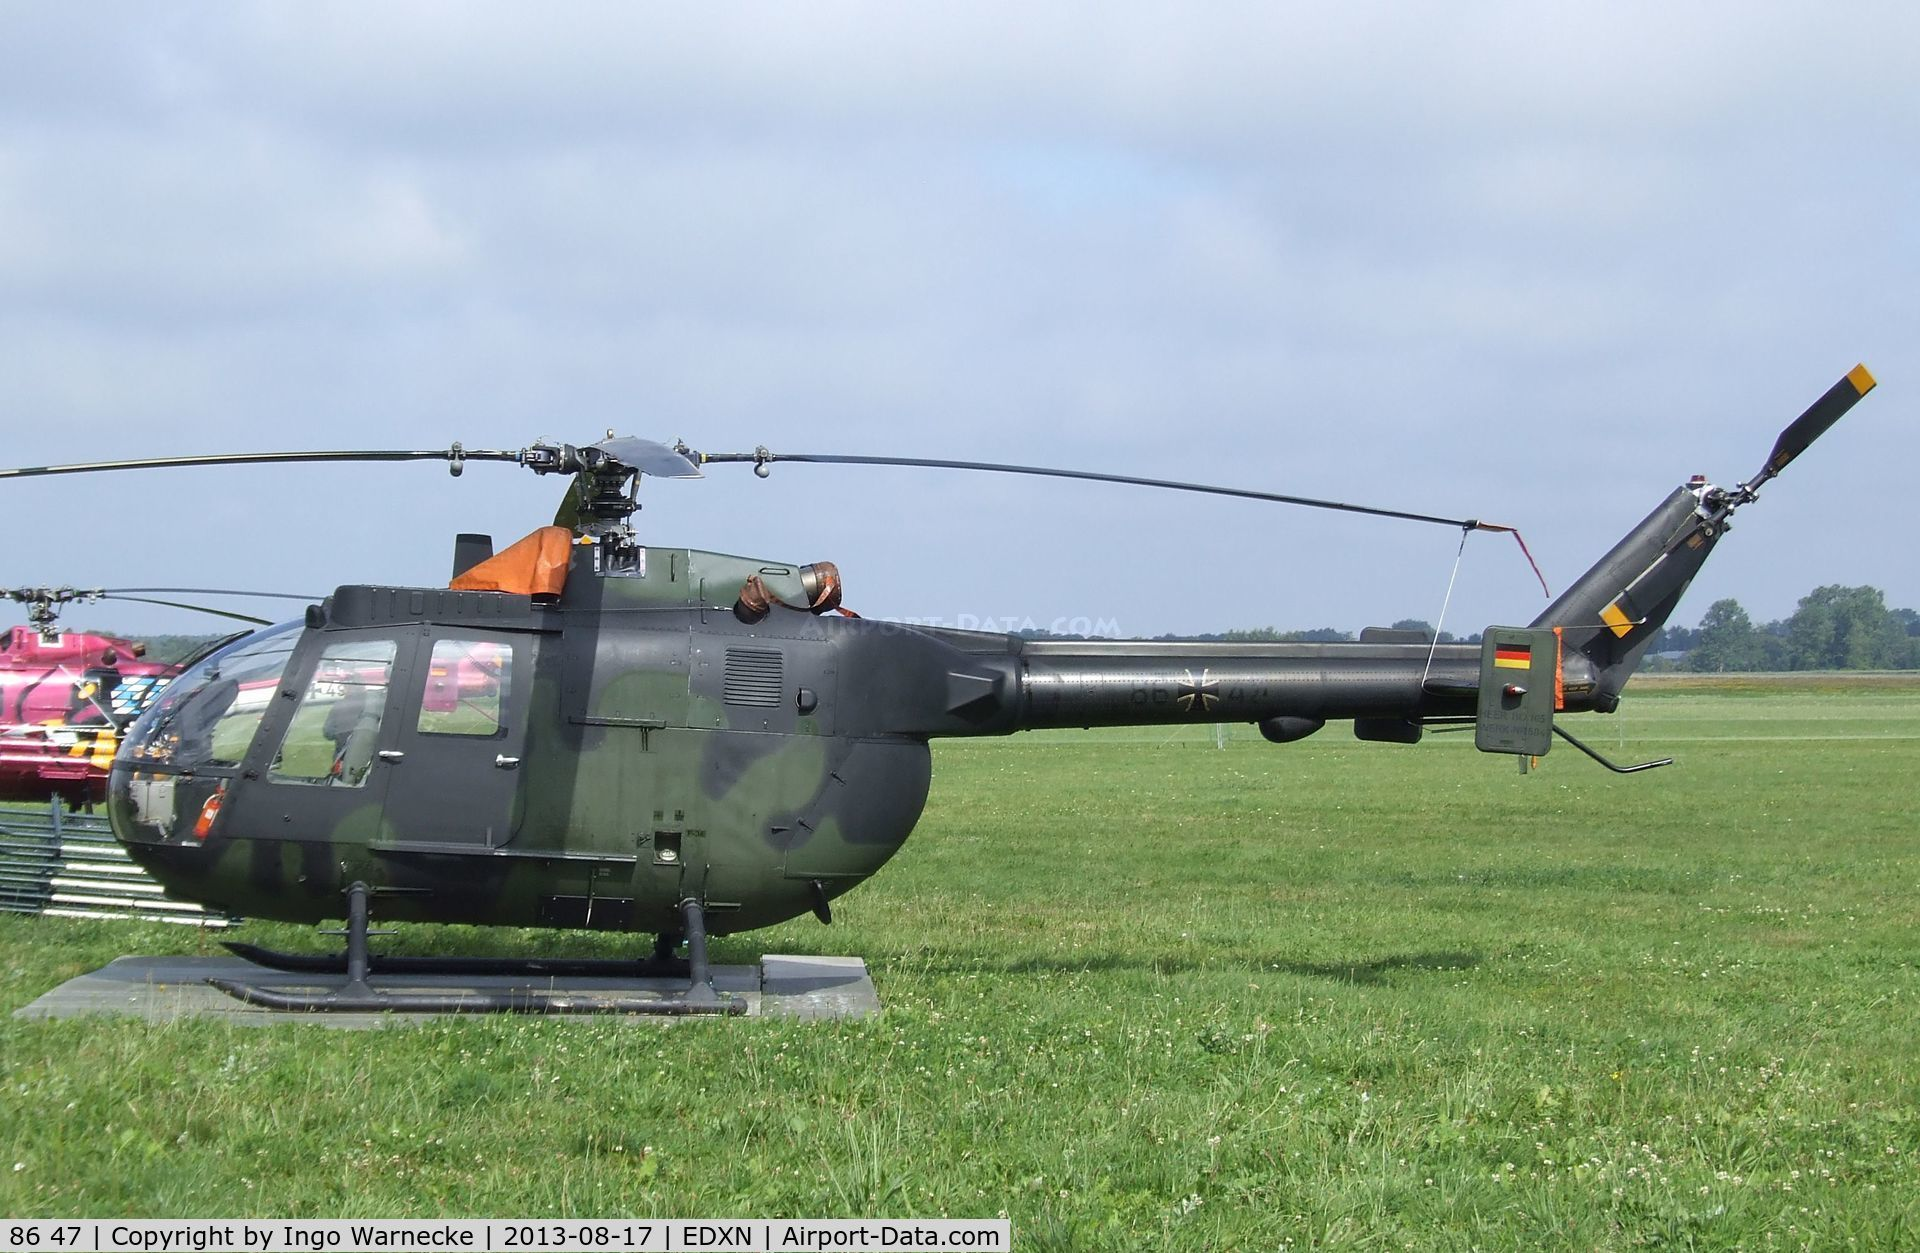 86 47, MBB Bo-105P C/N 6047, MBB Bo 105P of the German Army Aviation (Heeresflieger) at the Spottersday of the Nordholz Airday 2013 celebrationg 100 Years of German Naval Aviation at Nordholz Naval Aviation Base